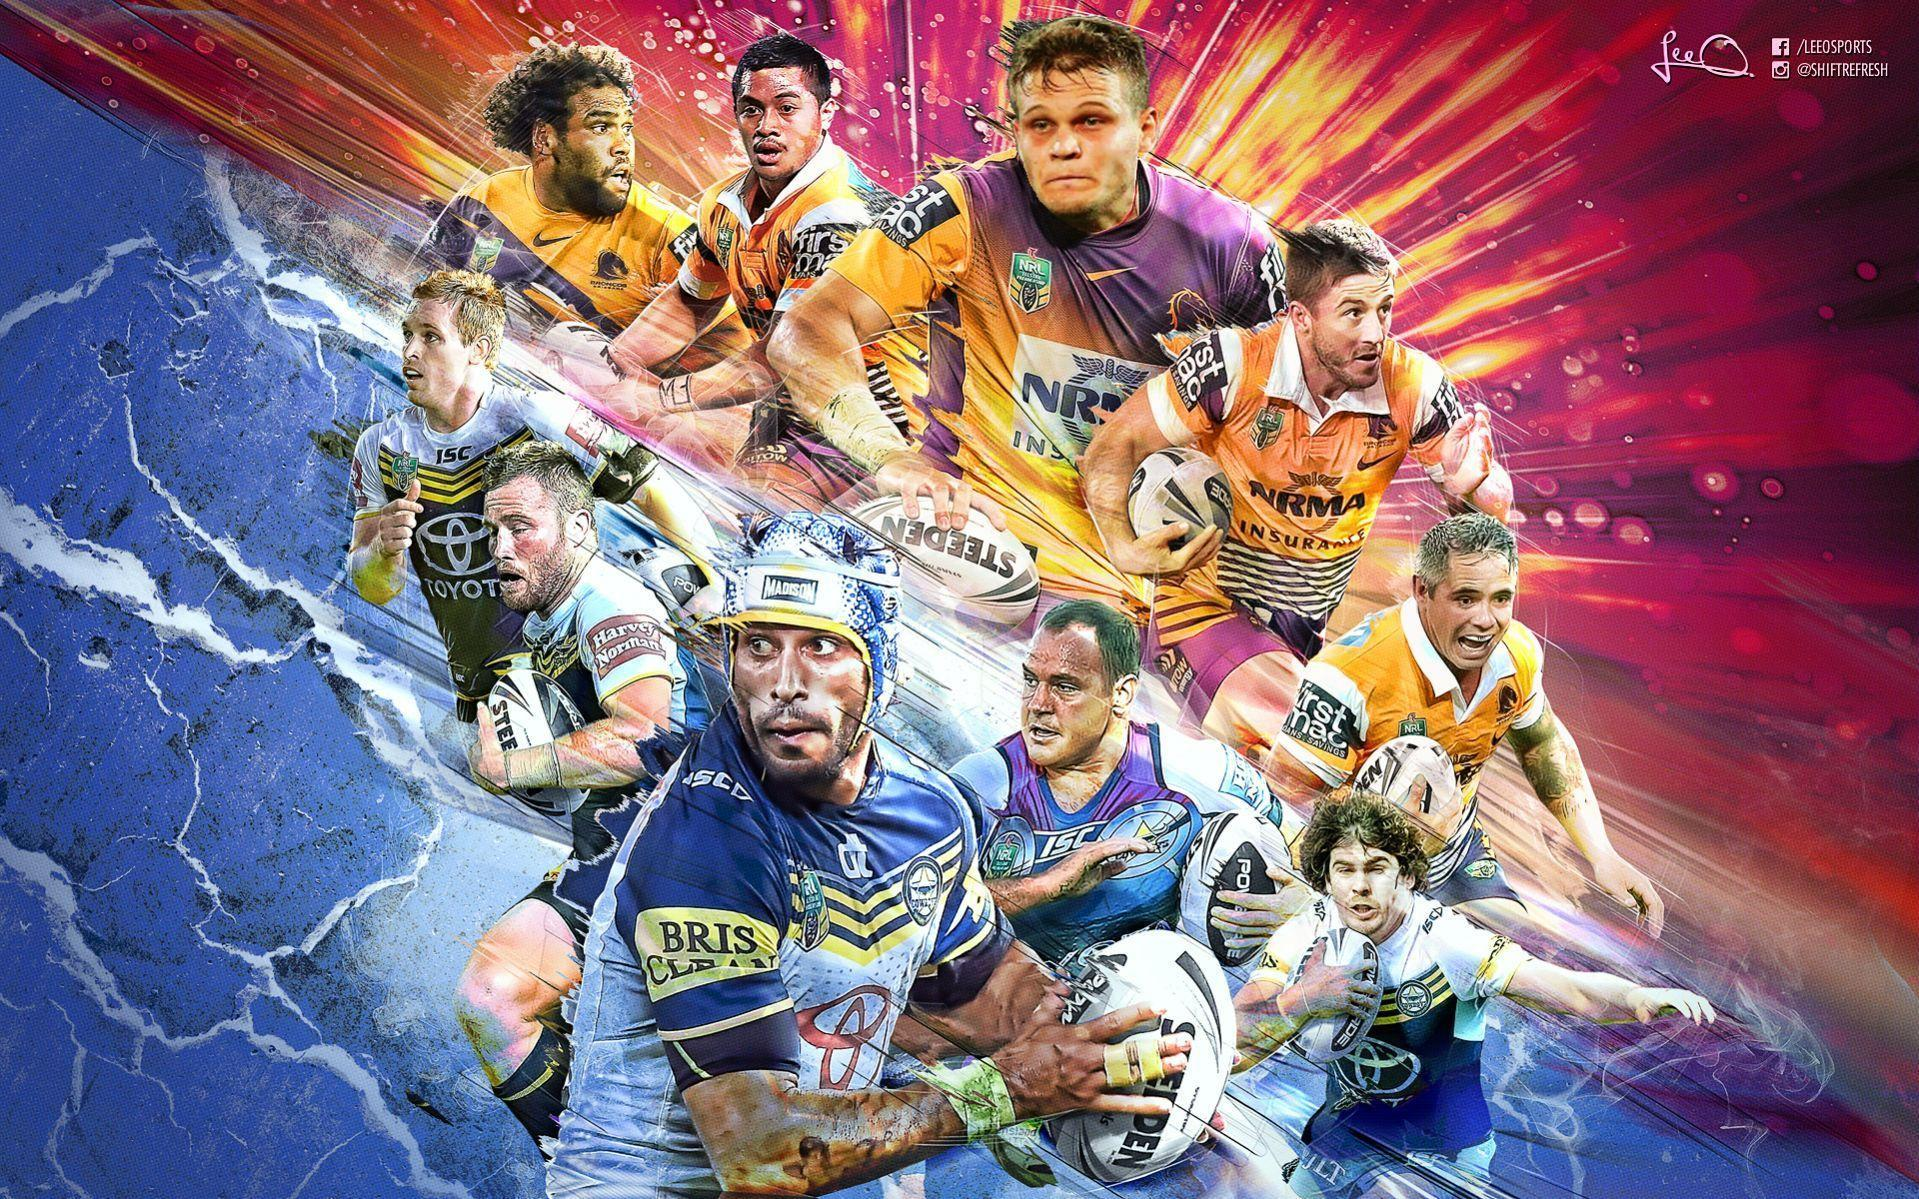 My NRL Grand Final wallpaper design should fire you up :) : nrl